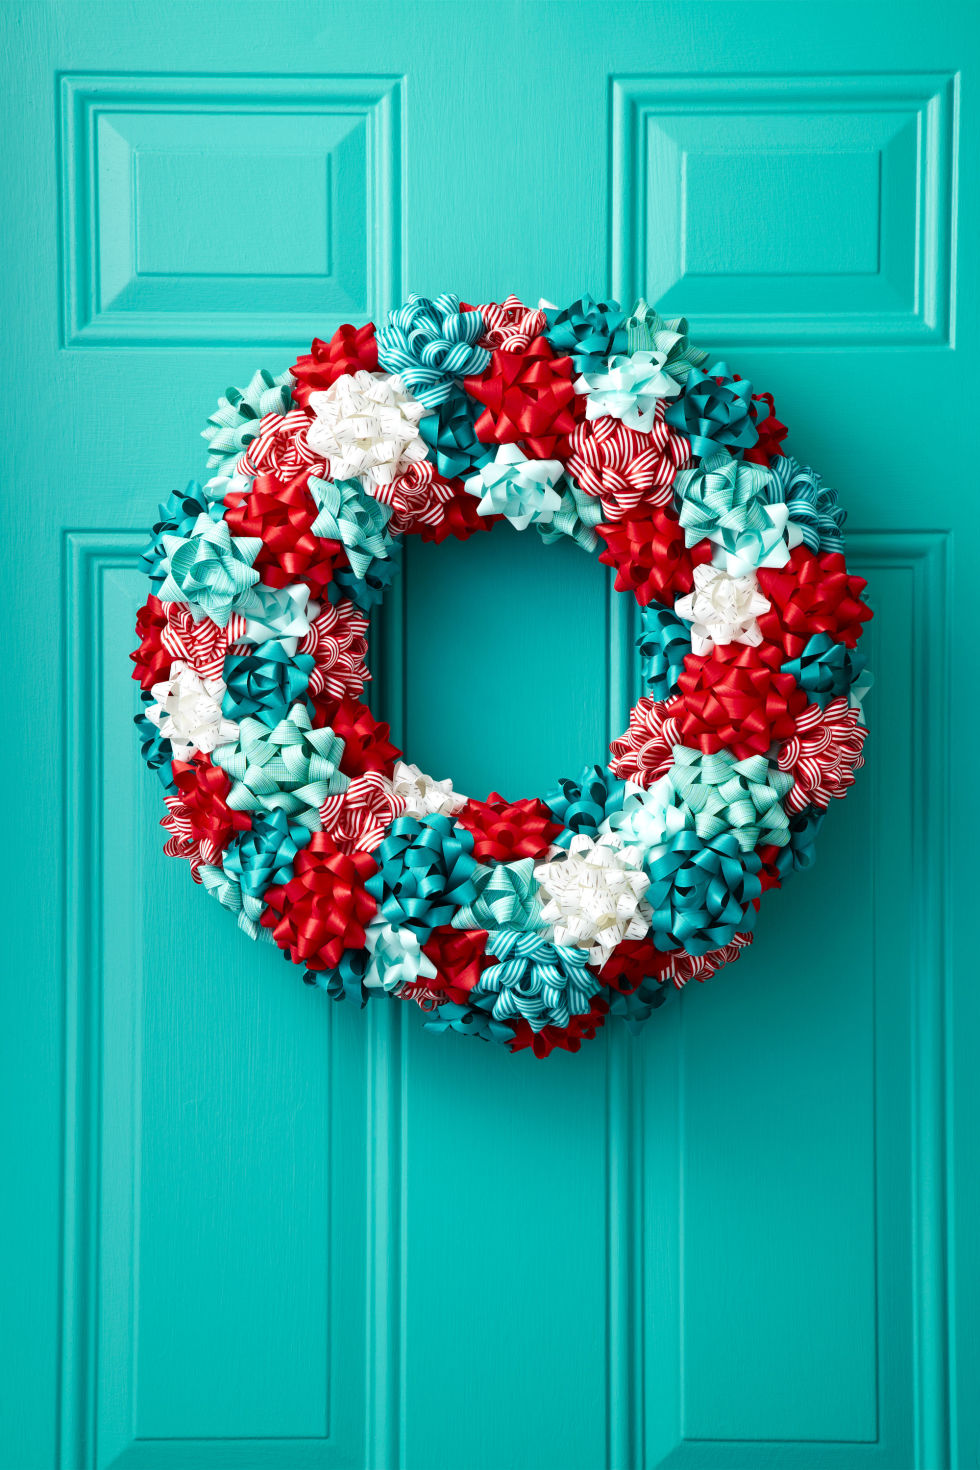 43 Easy Diy Christmas Decorations  Homemade Ideas For Holiday Decorating